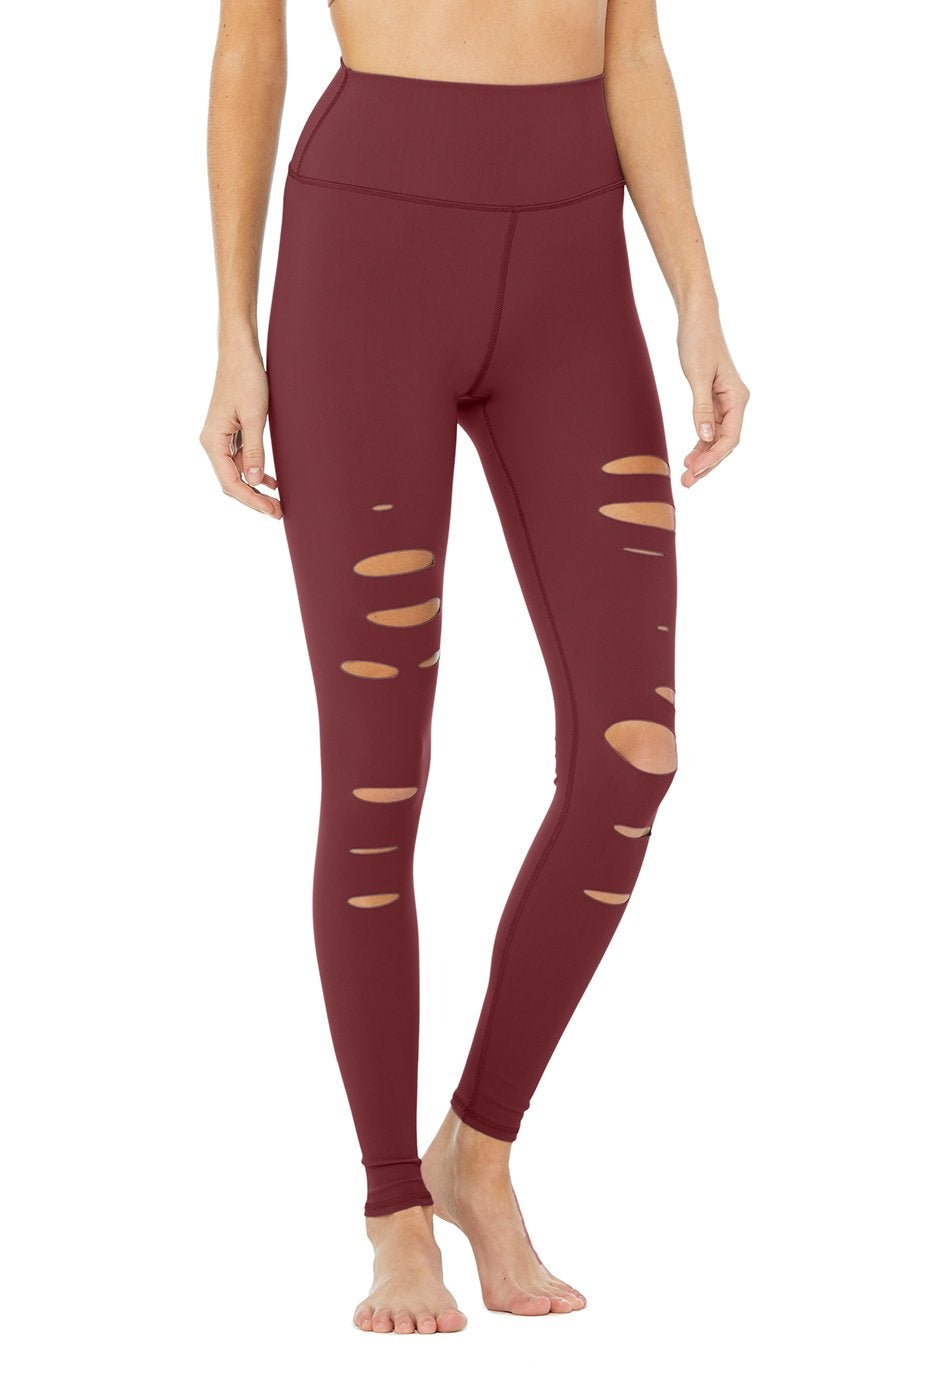 Alo High-Waisted Ripped Warrior Leggings